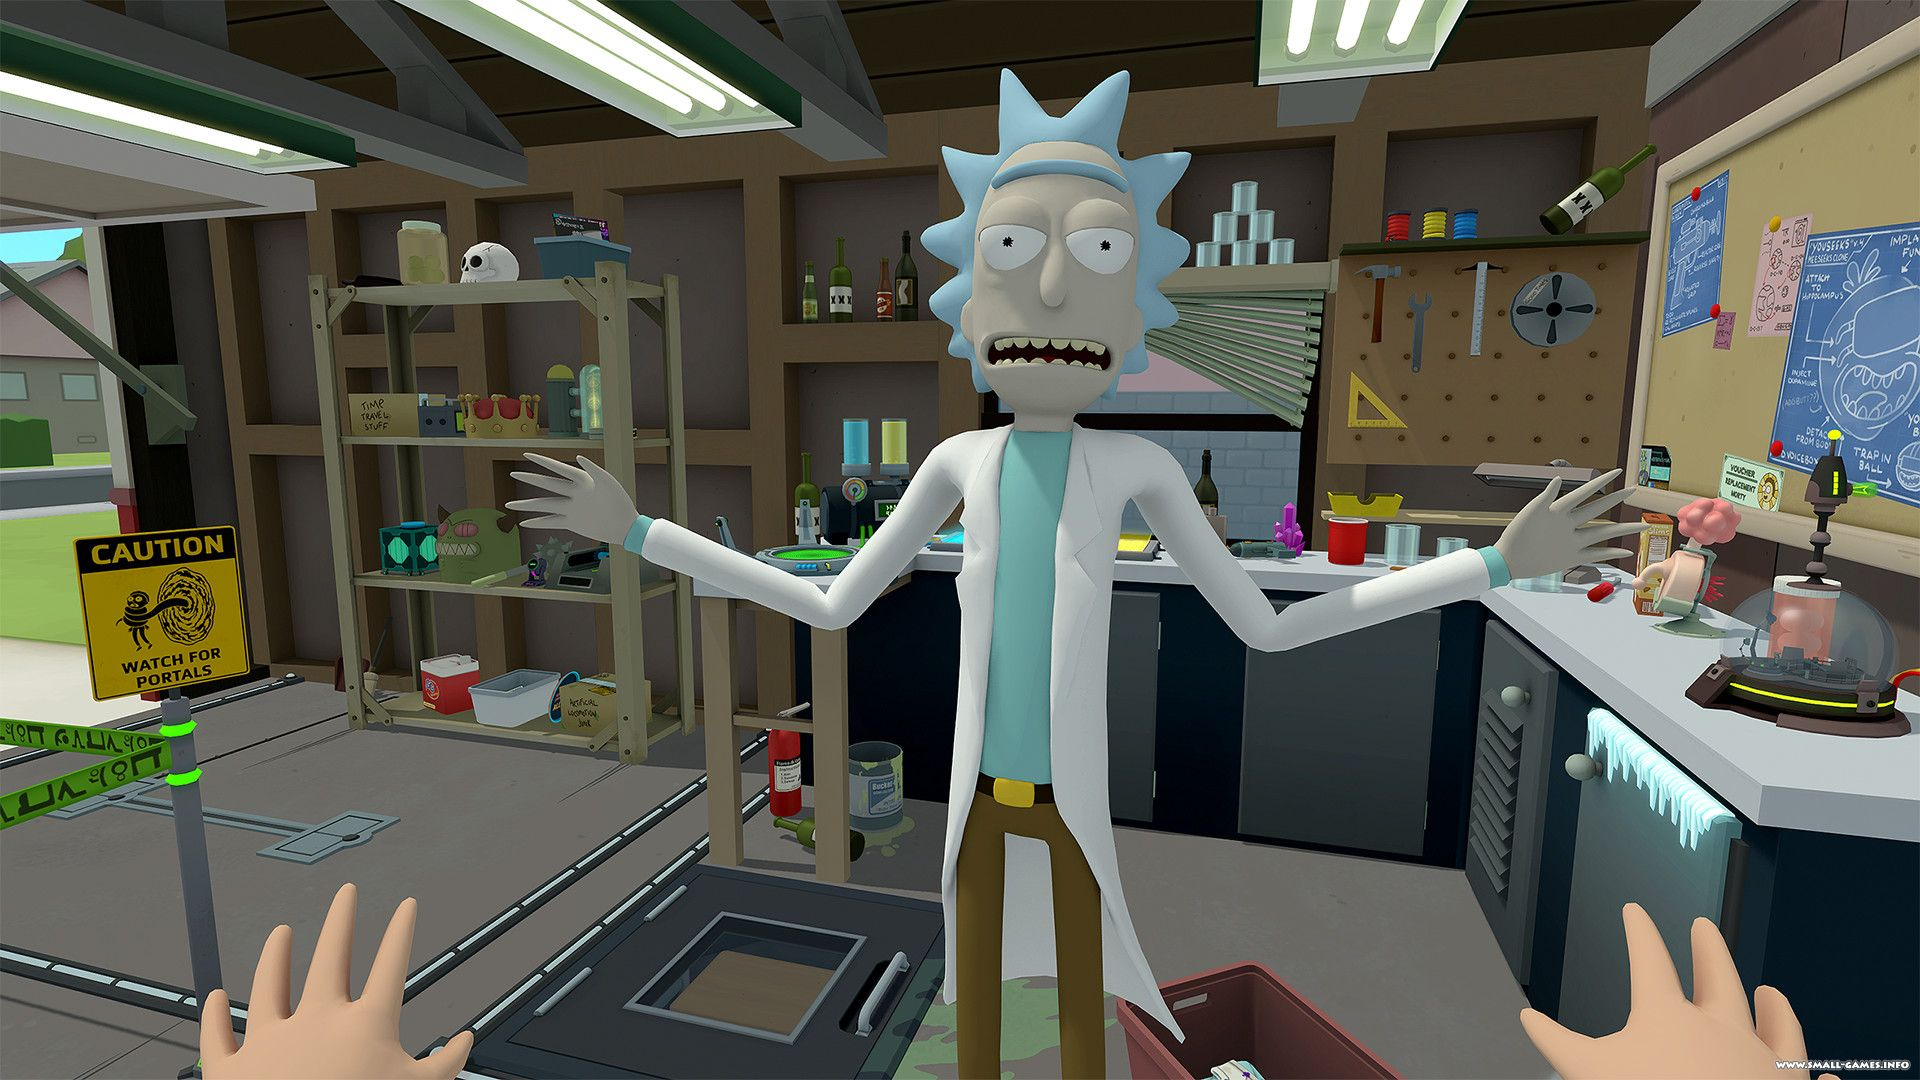 Скриншот *Rick and Morty: Virtual Rick-ality [PS4 VR Only] 5.05 / 6.72 / 7.02 [EUR] (2018) [Английский] (v1.00)*